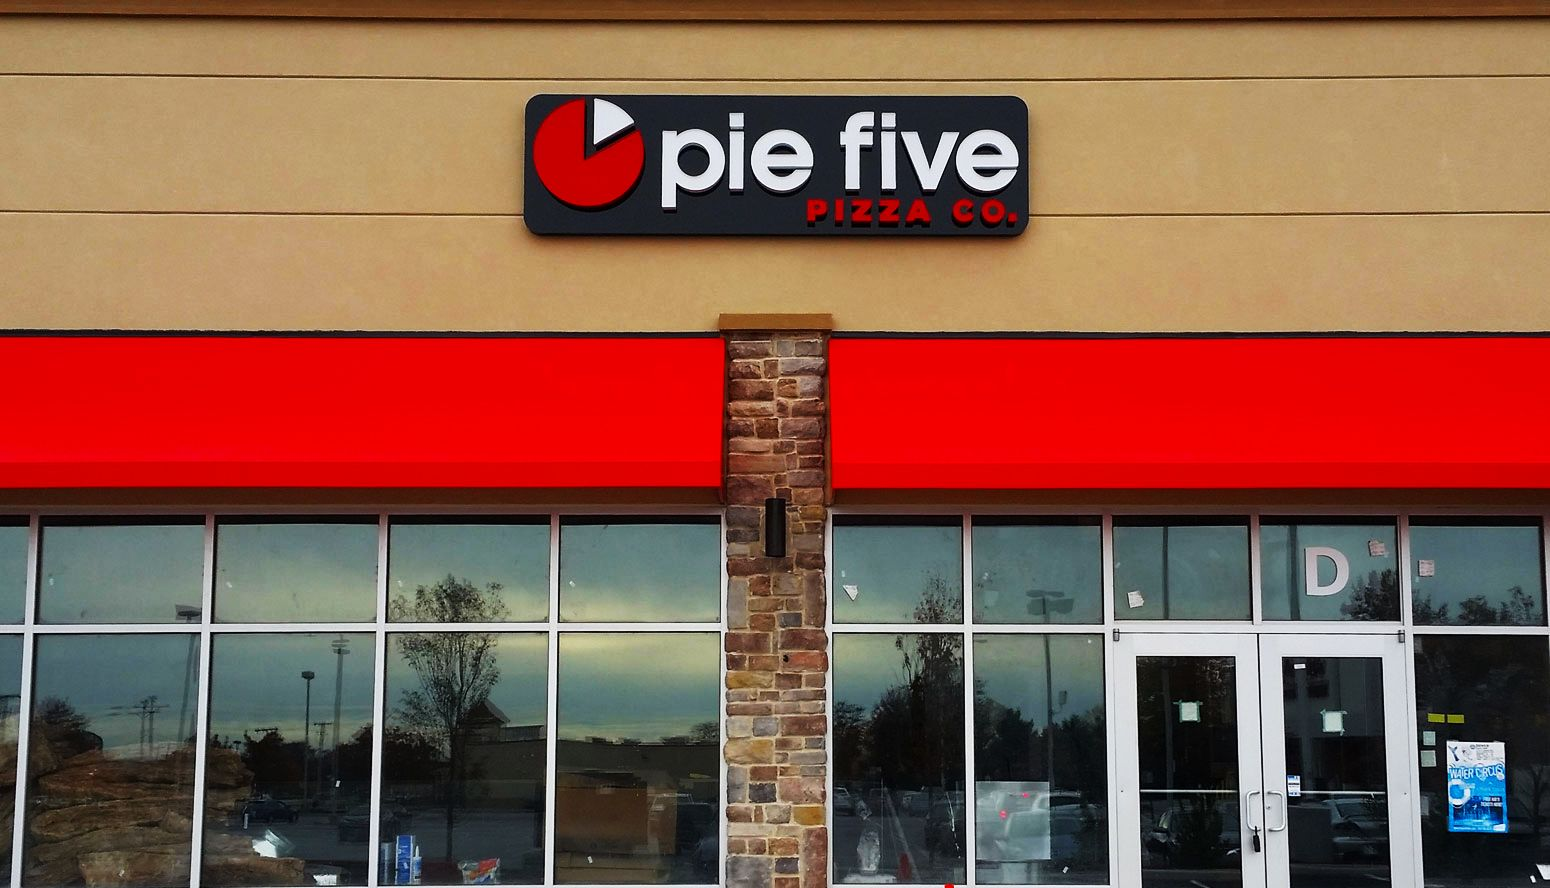 pie five awning building sign